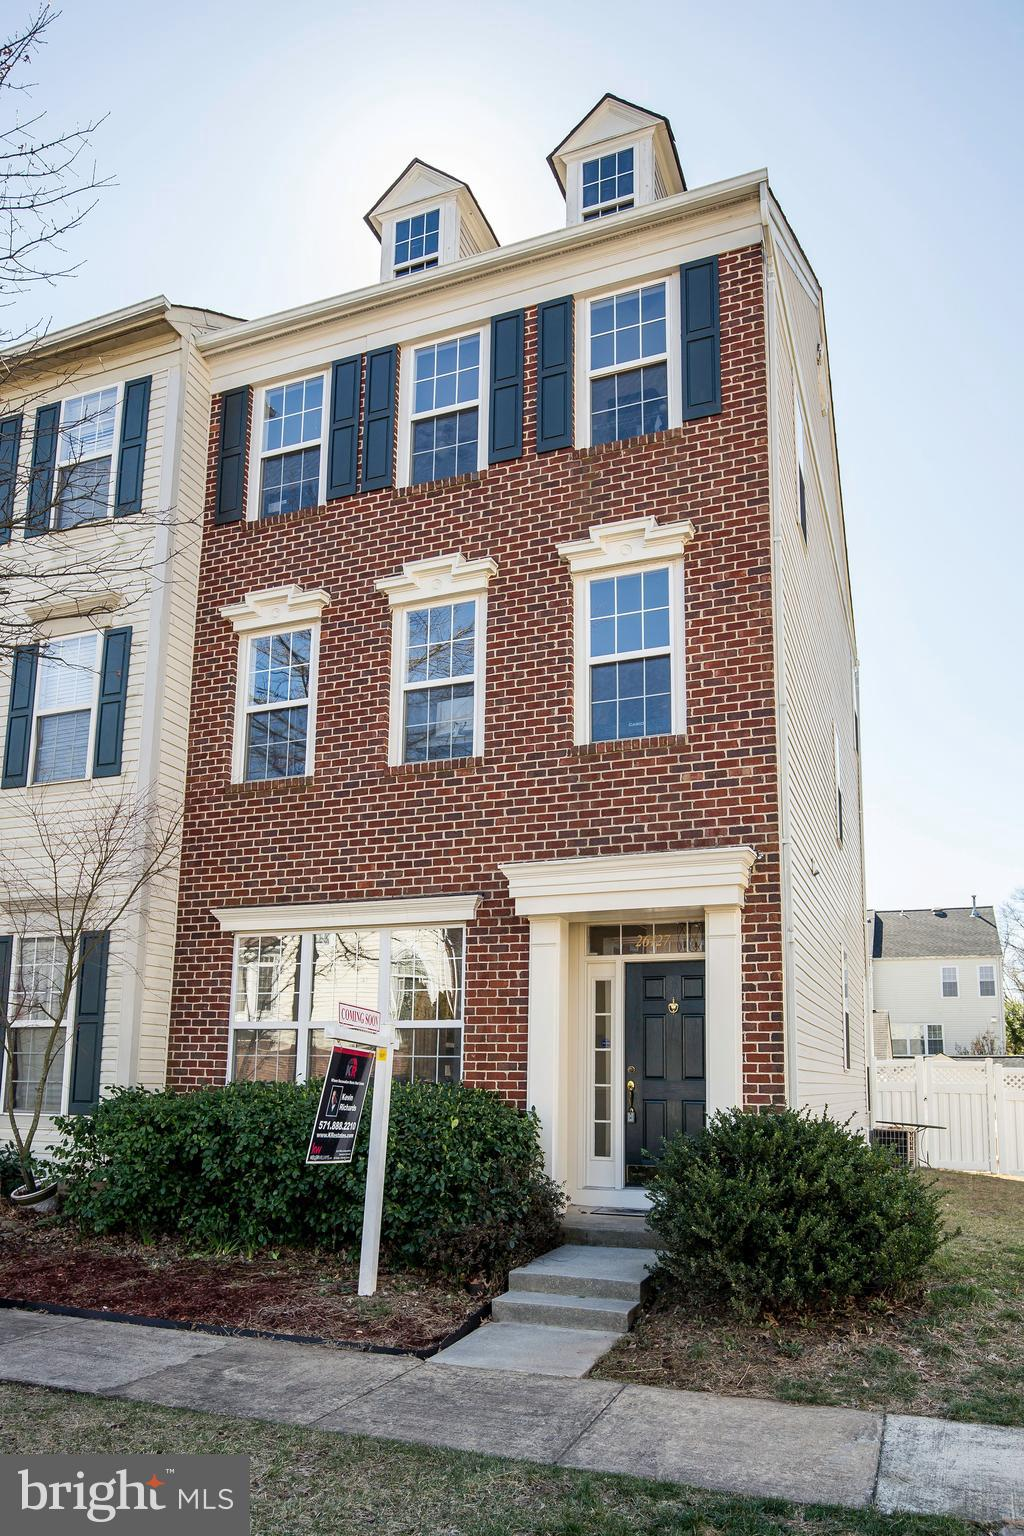 CONTRACT FINANCING FELL THROUGH. BACK ON MARKET!  MILLER & SMITH REGENCY MODEL END UNIT TOWNHOME!! 3